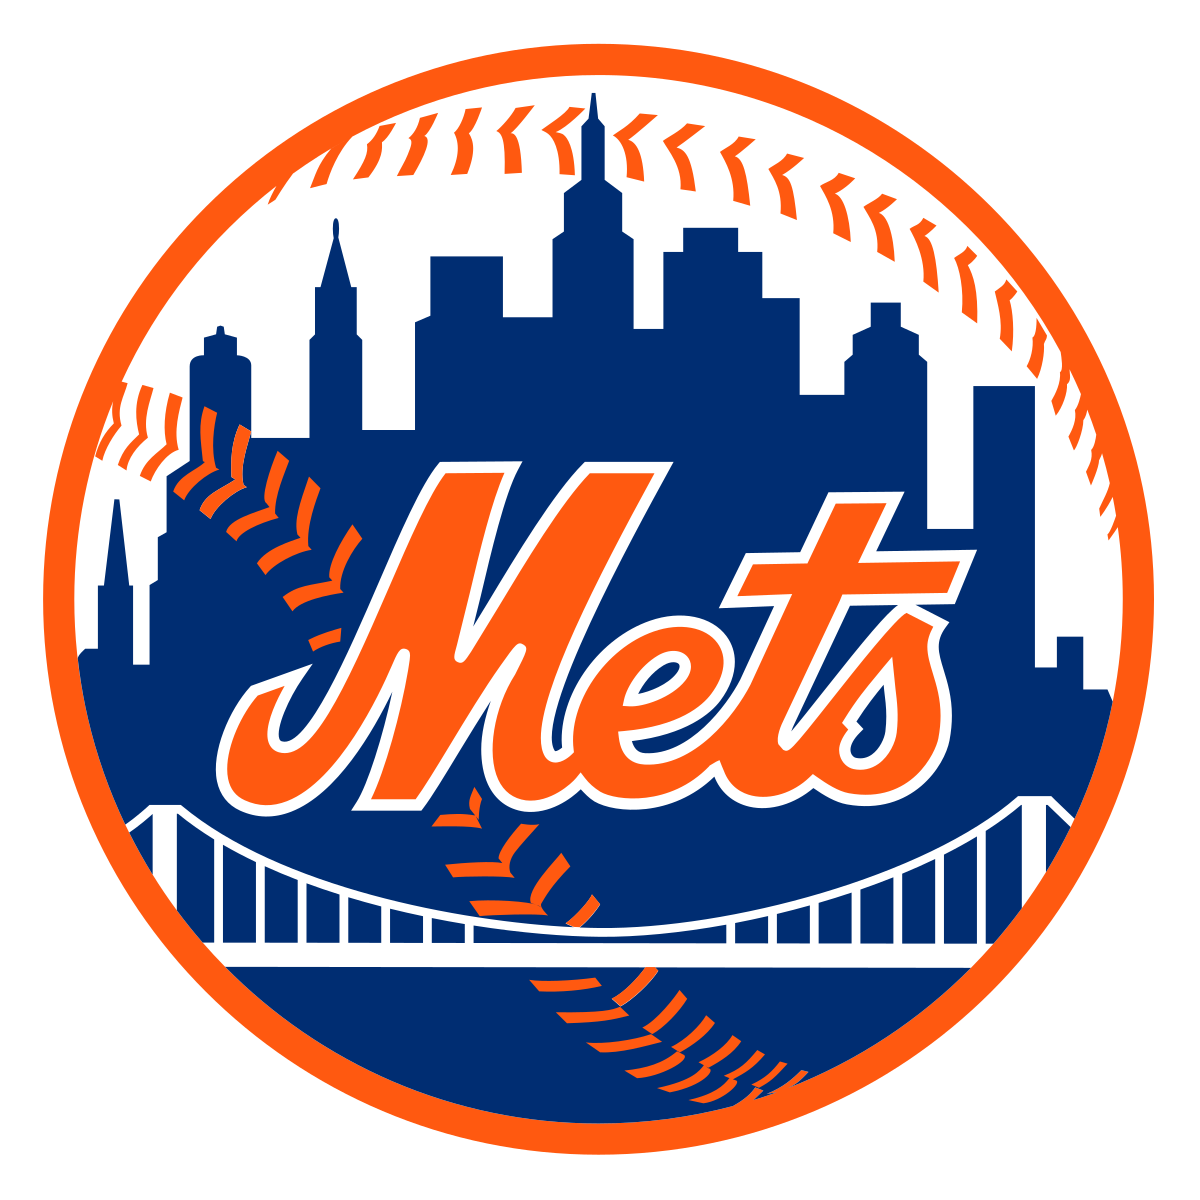 New york mets logo png. Wikipedia